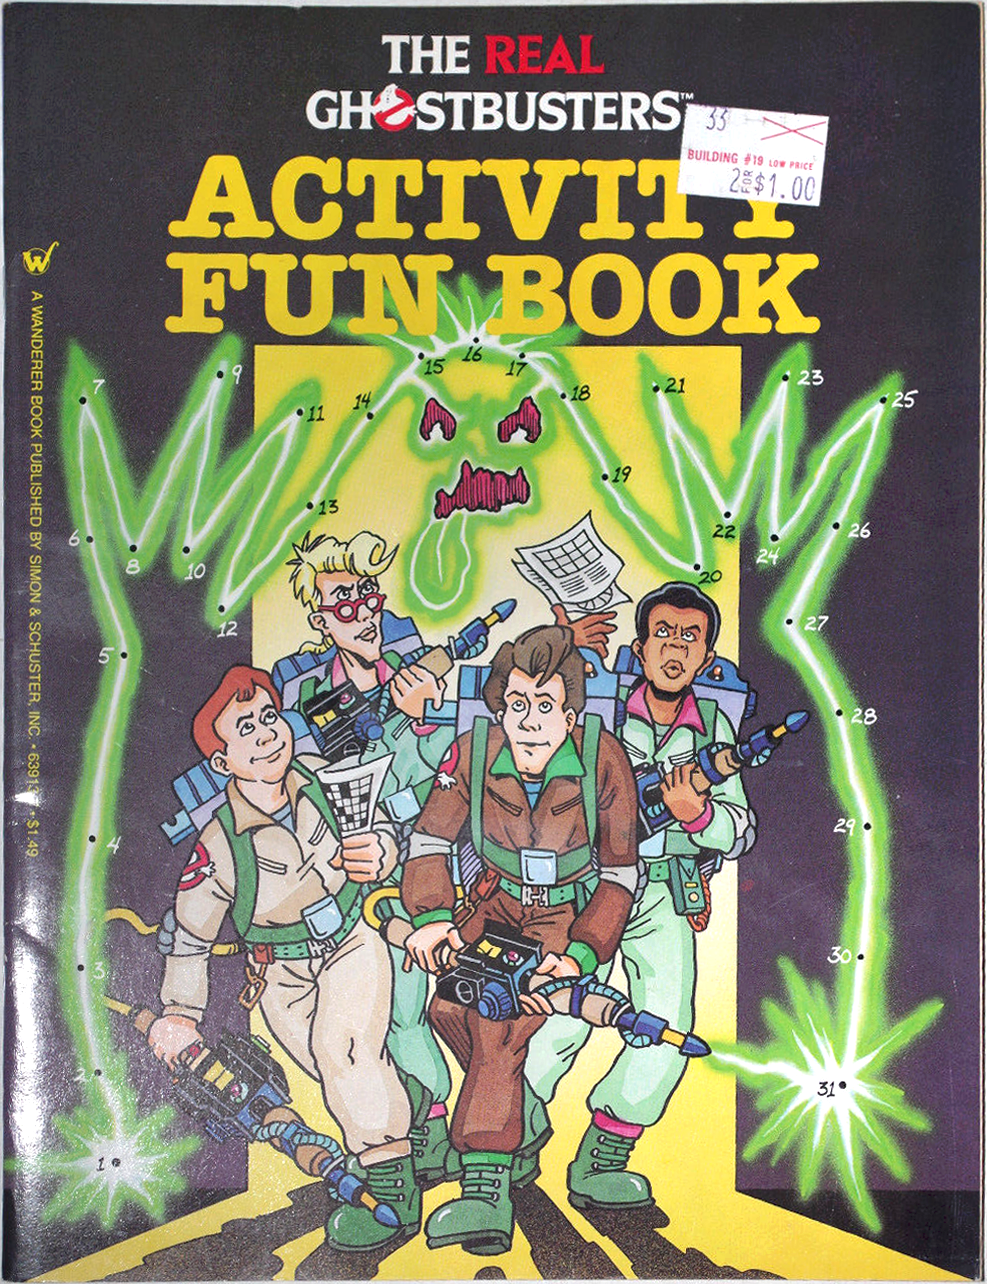 The Real Ghostbusters Activity Fun Book